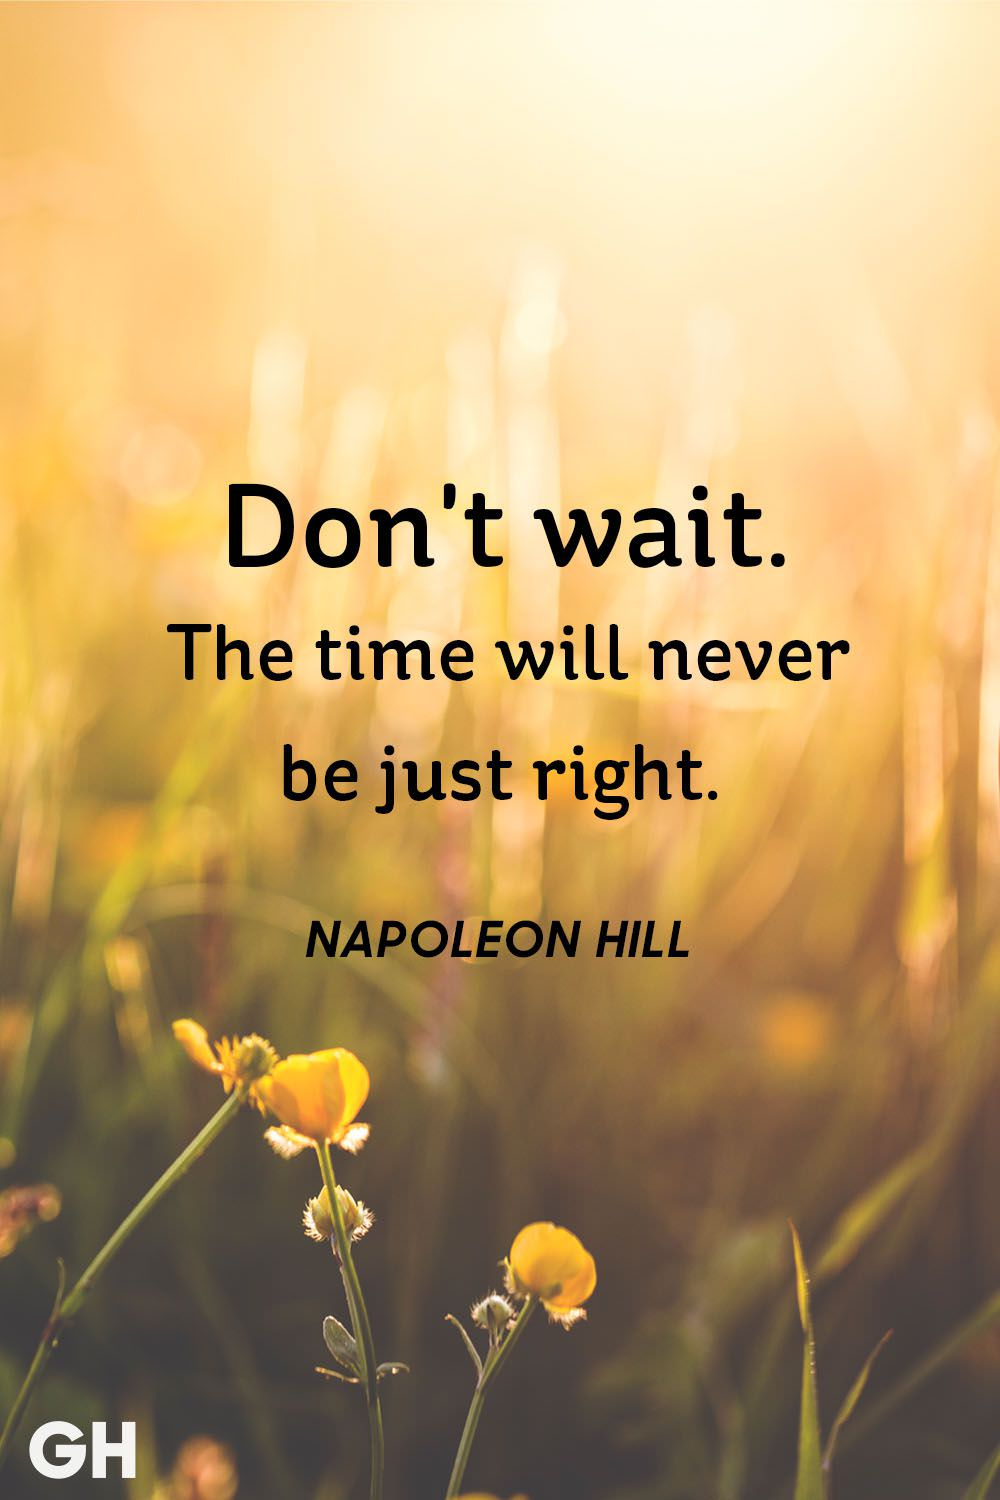 """Don't wait,The Time will…."" Napoleon Hill [1000 × 1500]"